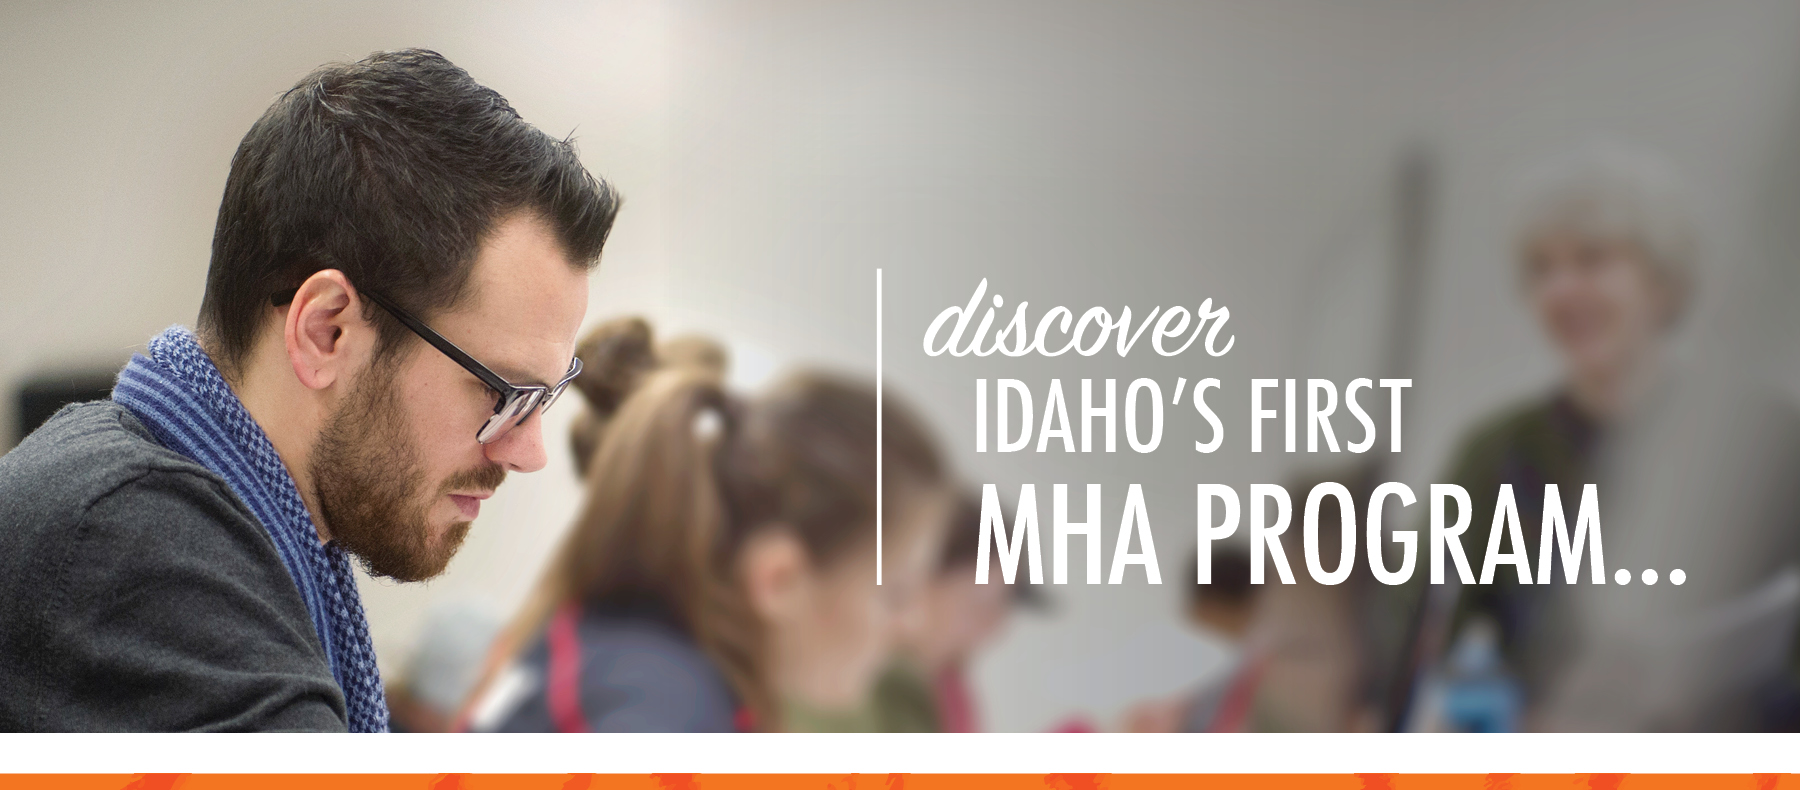 Discover Idaho's First MHA Program